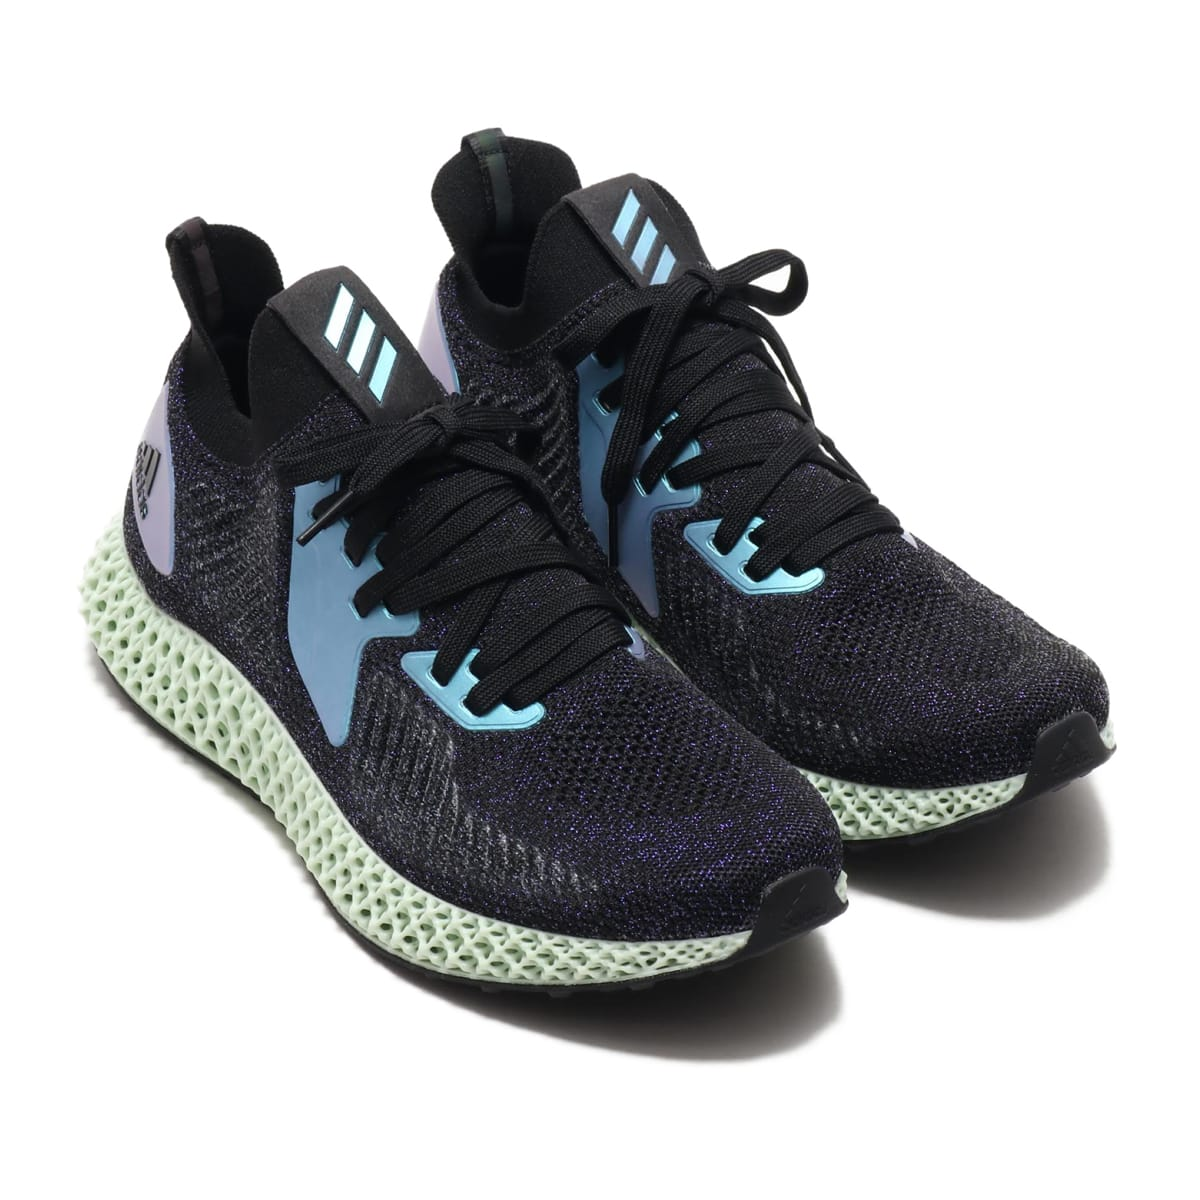 adidas alphaedge 4D CORE BLACK/GLORY BLUE/COLLEGE PURPLE 19FW-S_photo_large